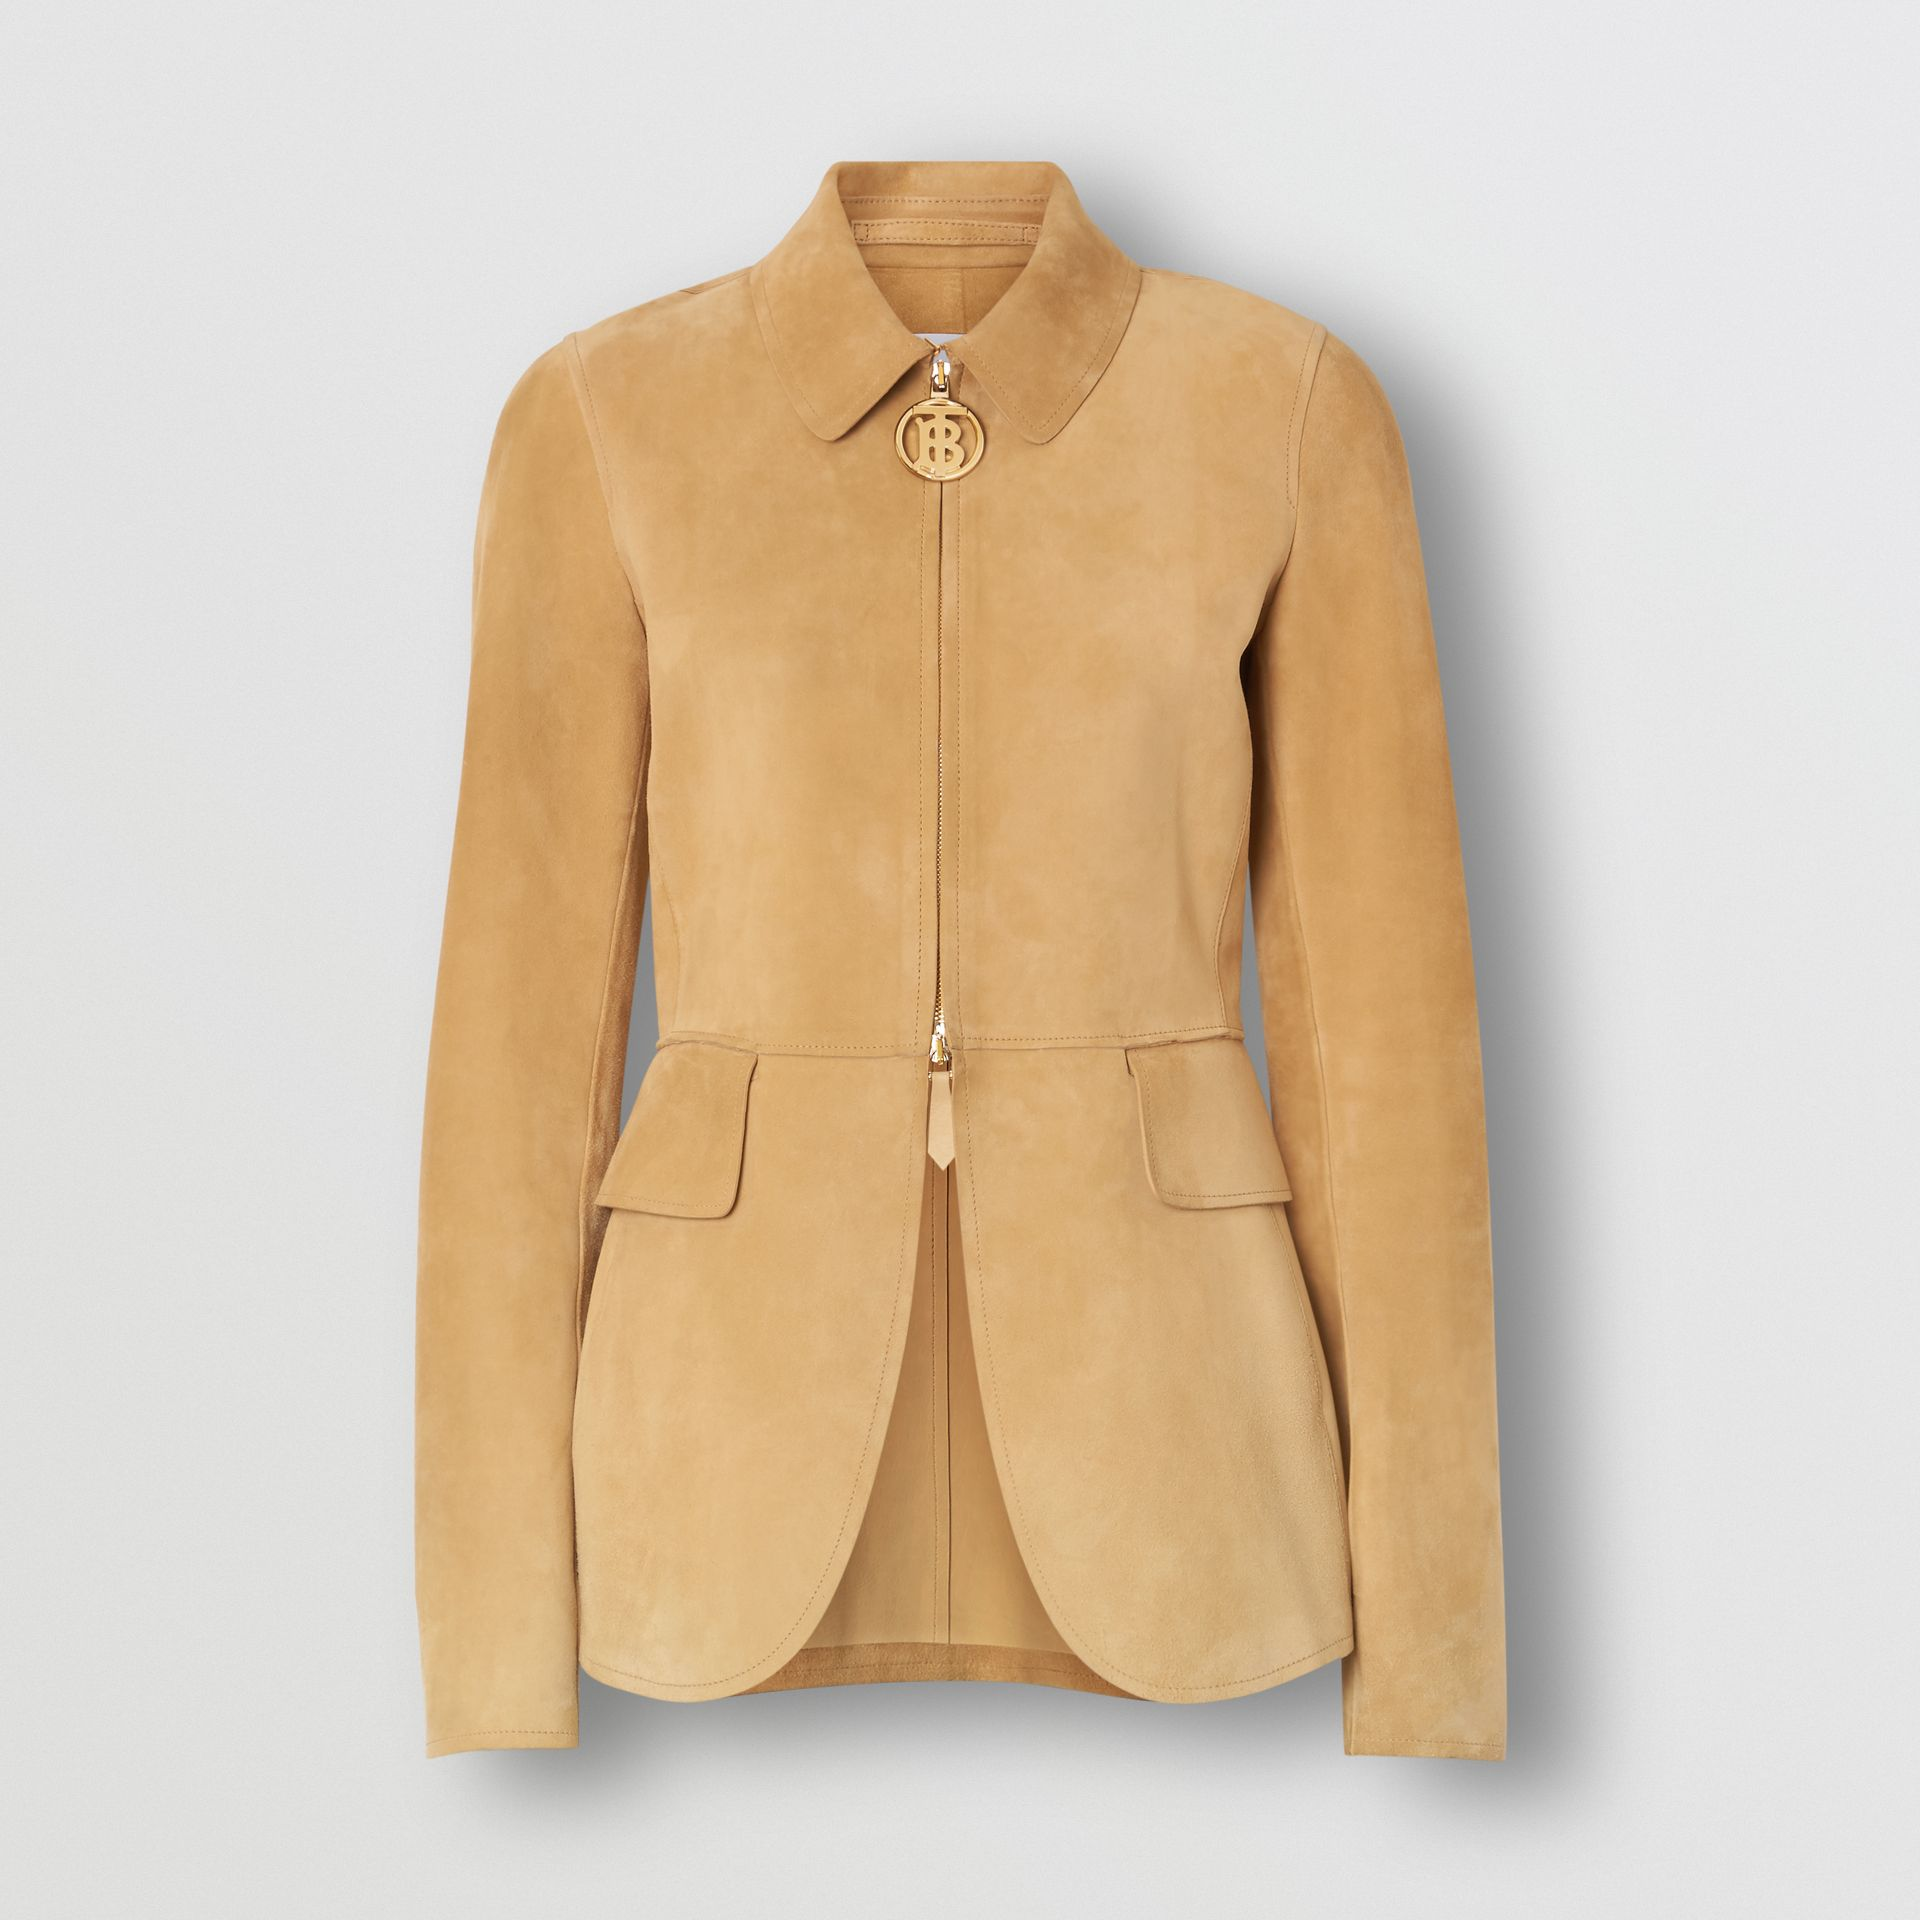 Monogram Motif Suede Riding Jacket in Sand - Women | Burberry Singapore - gallery image 3